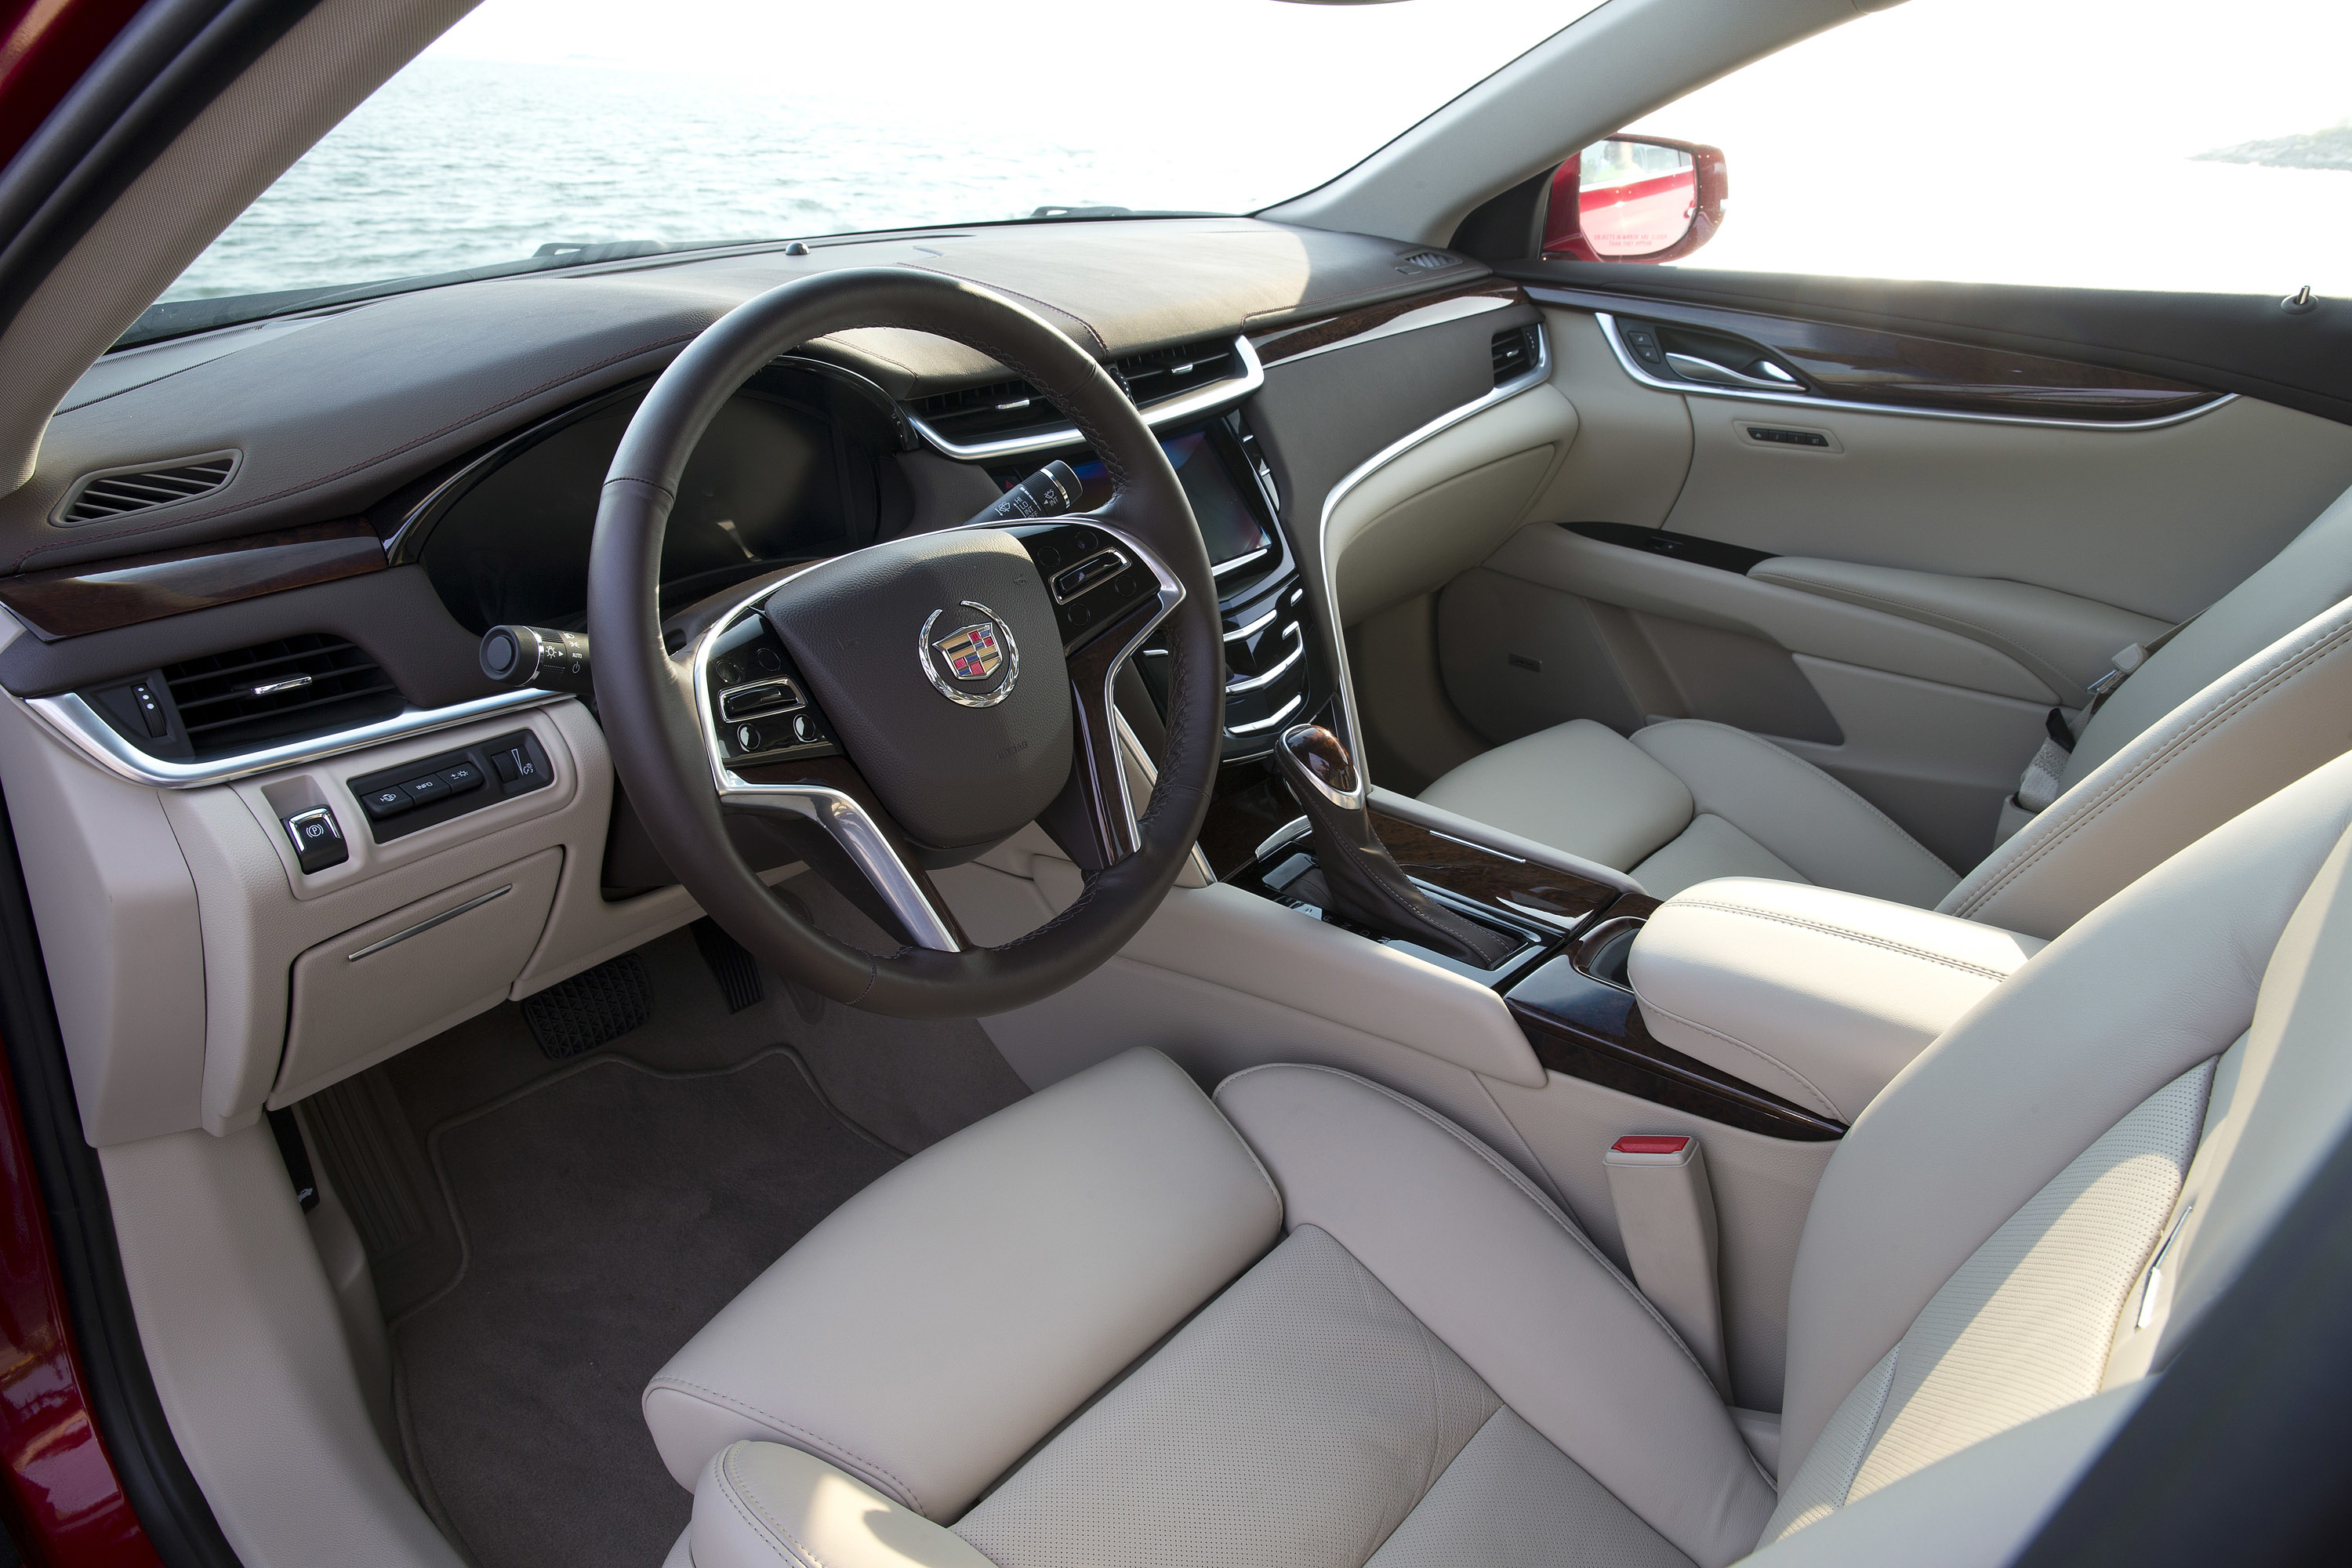 dark car woman a blue ats buying img at featured cadillac model adriatic retails msrp as for in the coupe xts jouelzy single metallic